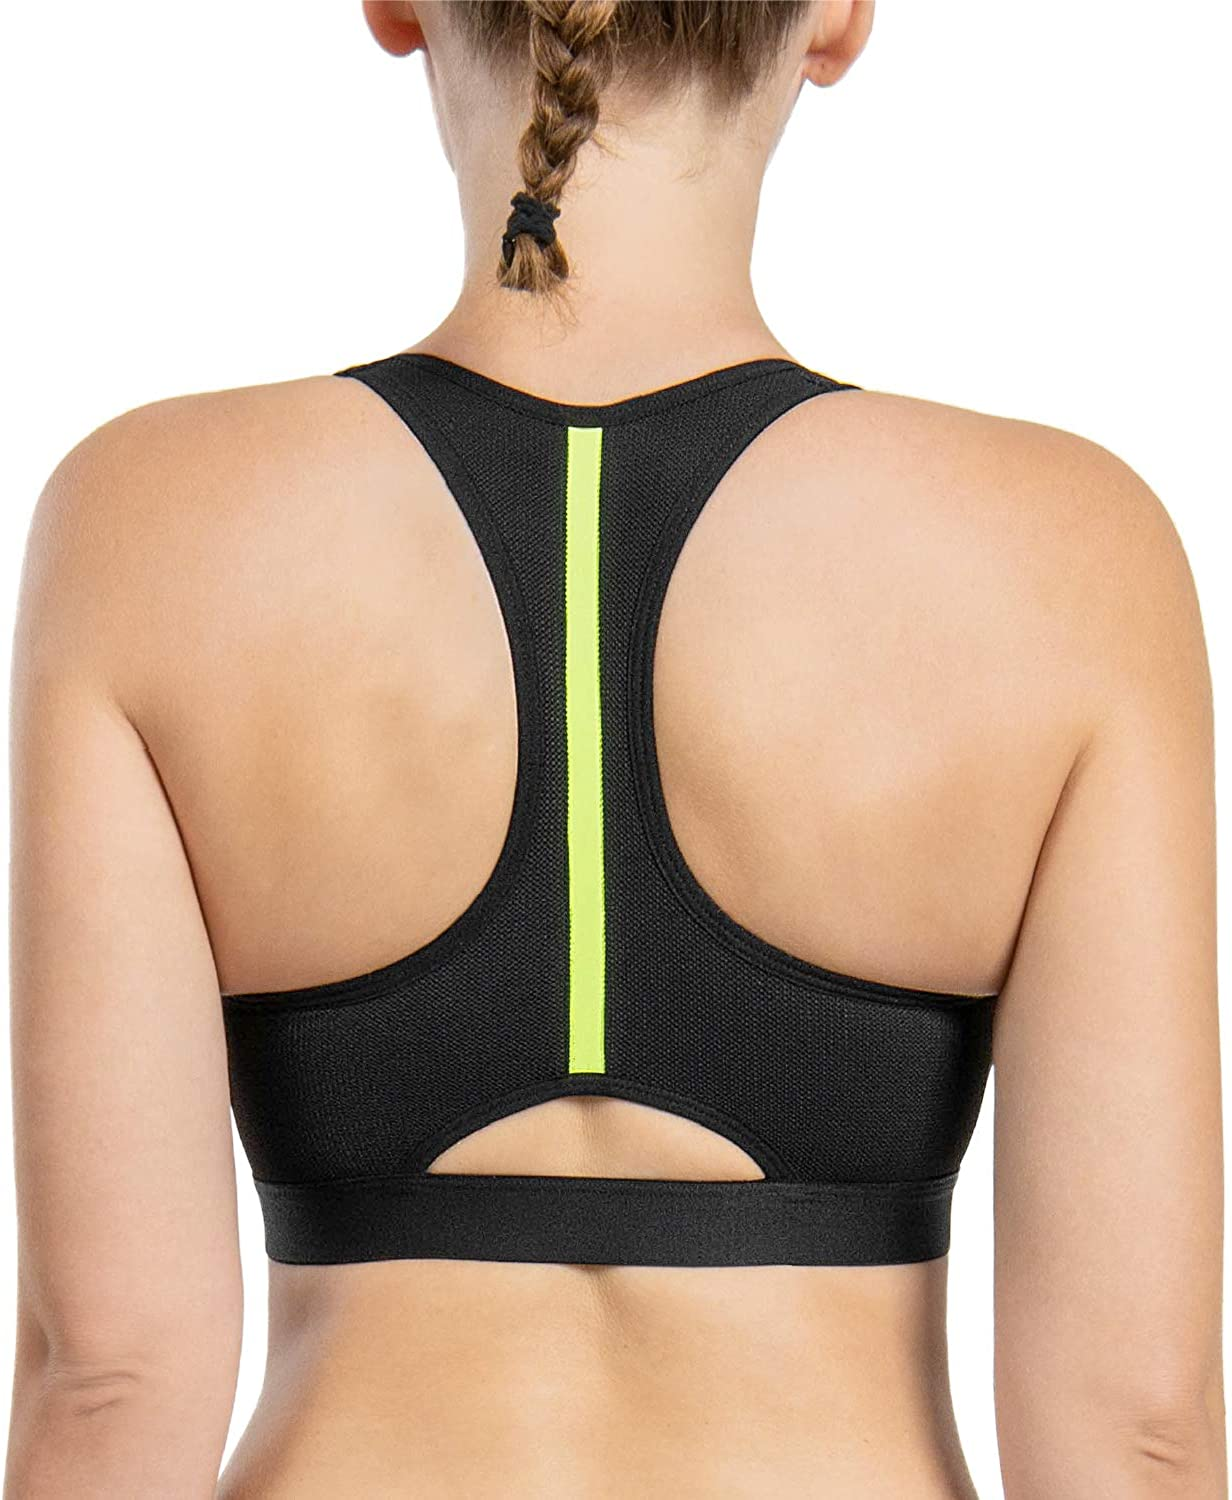 Wingslove Women/'s Front Closure Zip Sports Bra High Impact Racerback Wirefree Full Support Bra Bounce Control